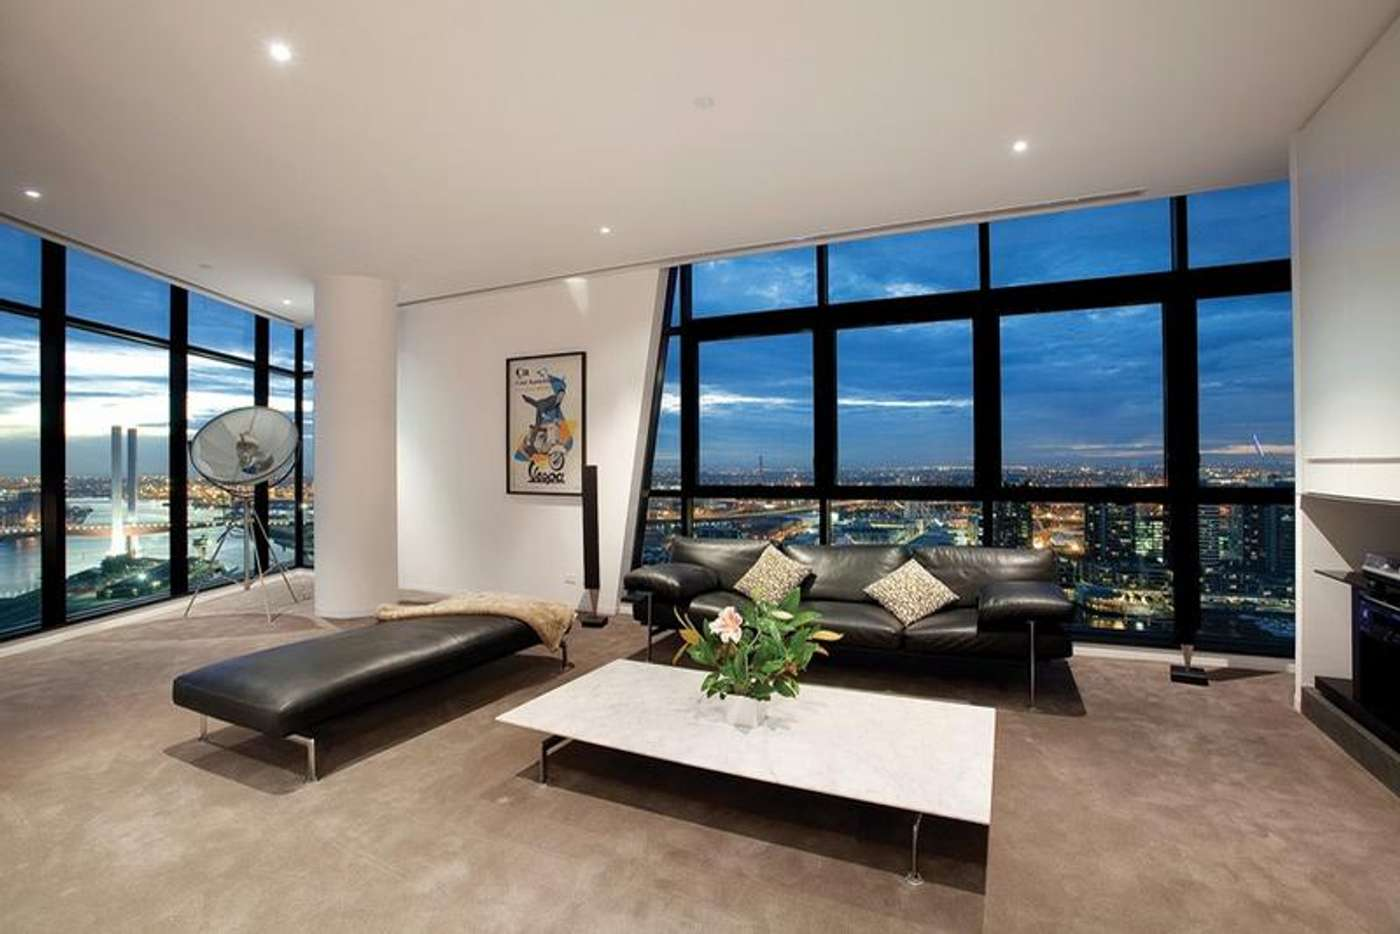 Main view of Homely house listing, 301/55 Victoria Harbour Promenade, Docklands VIC 3008